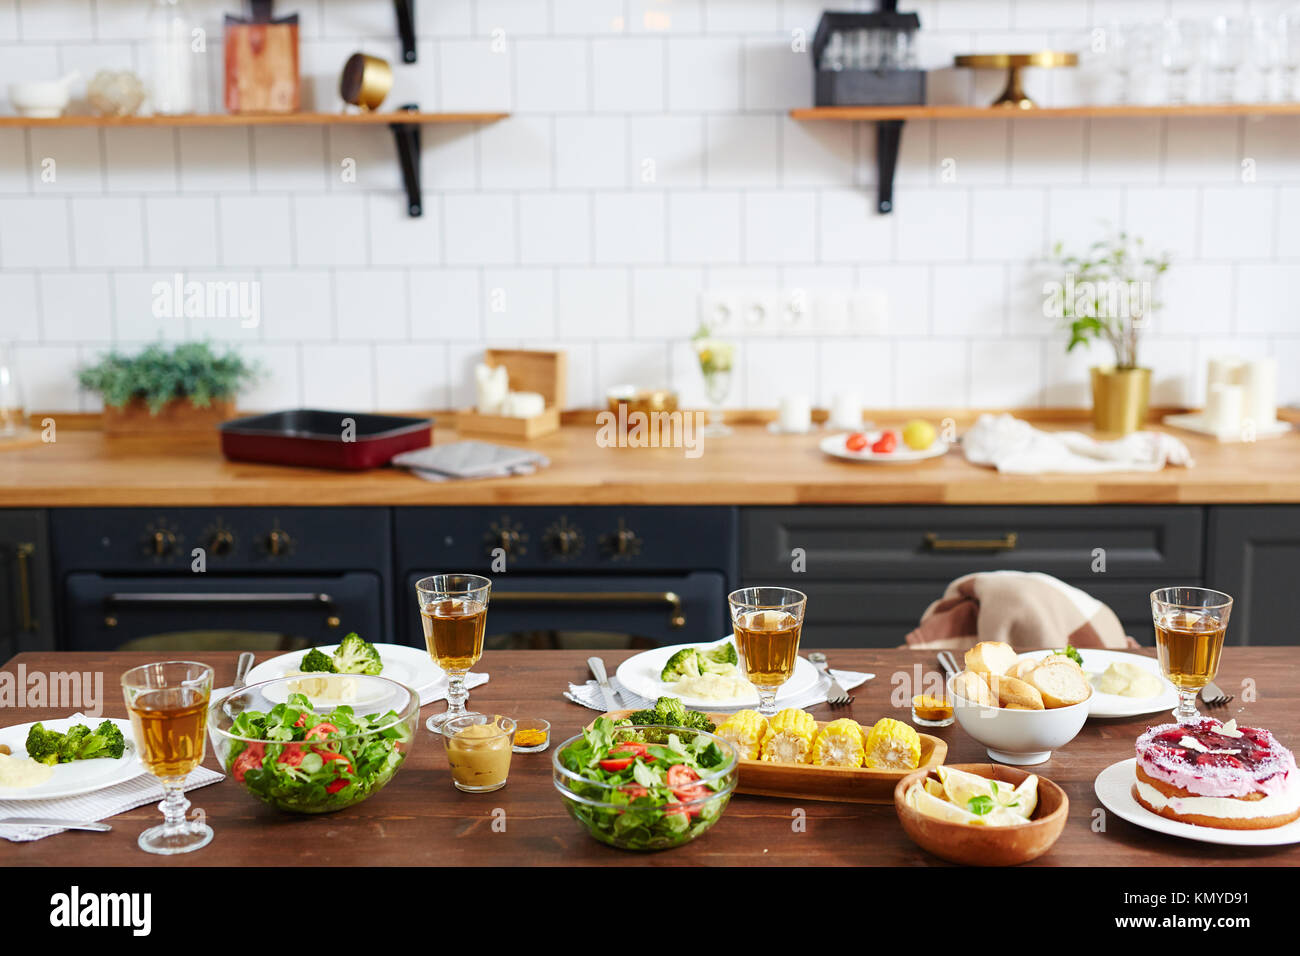 Food for festivity - Stock Image